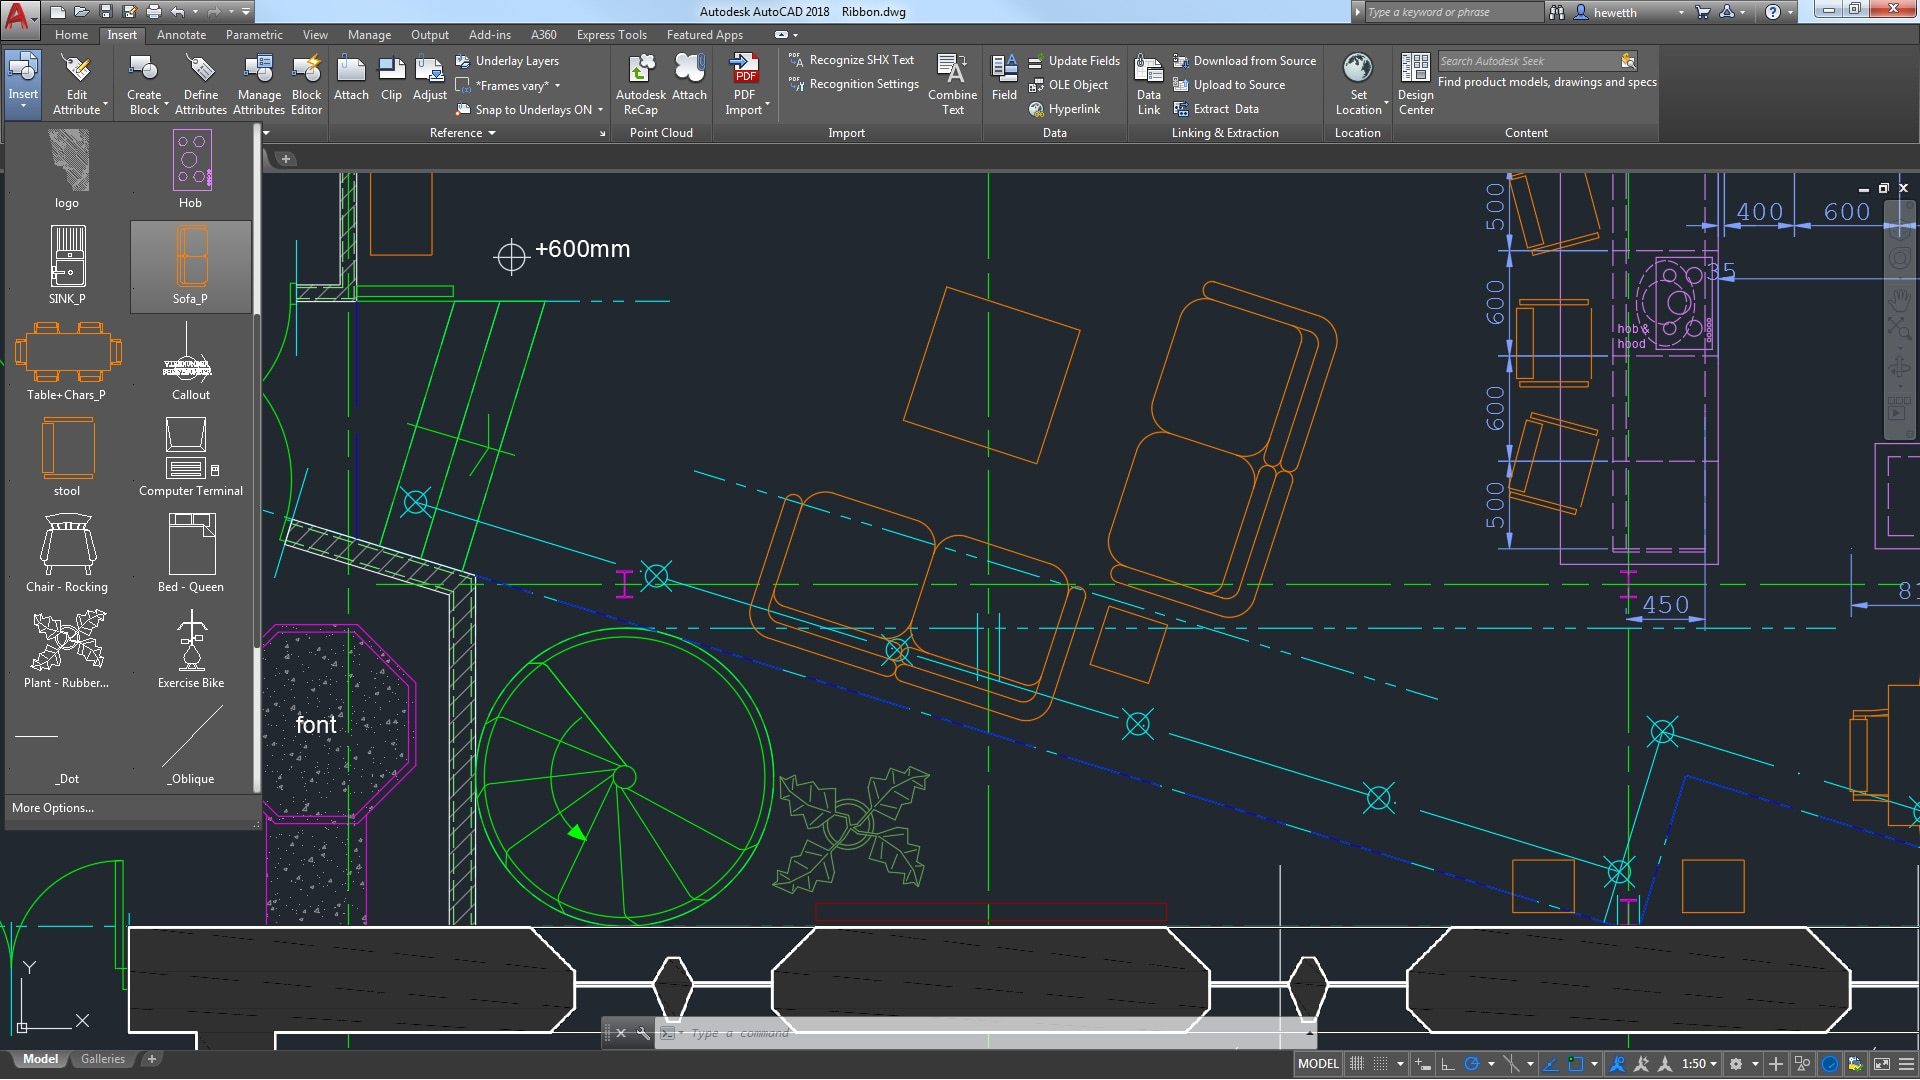 Whats New In Autocad 2019 Features Autodesk Electrical Circuit Design Common Cad Drawingsautocad Blockscrazy Access Your Favorite Tools When You Need Them With The Ribbon